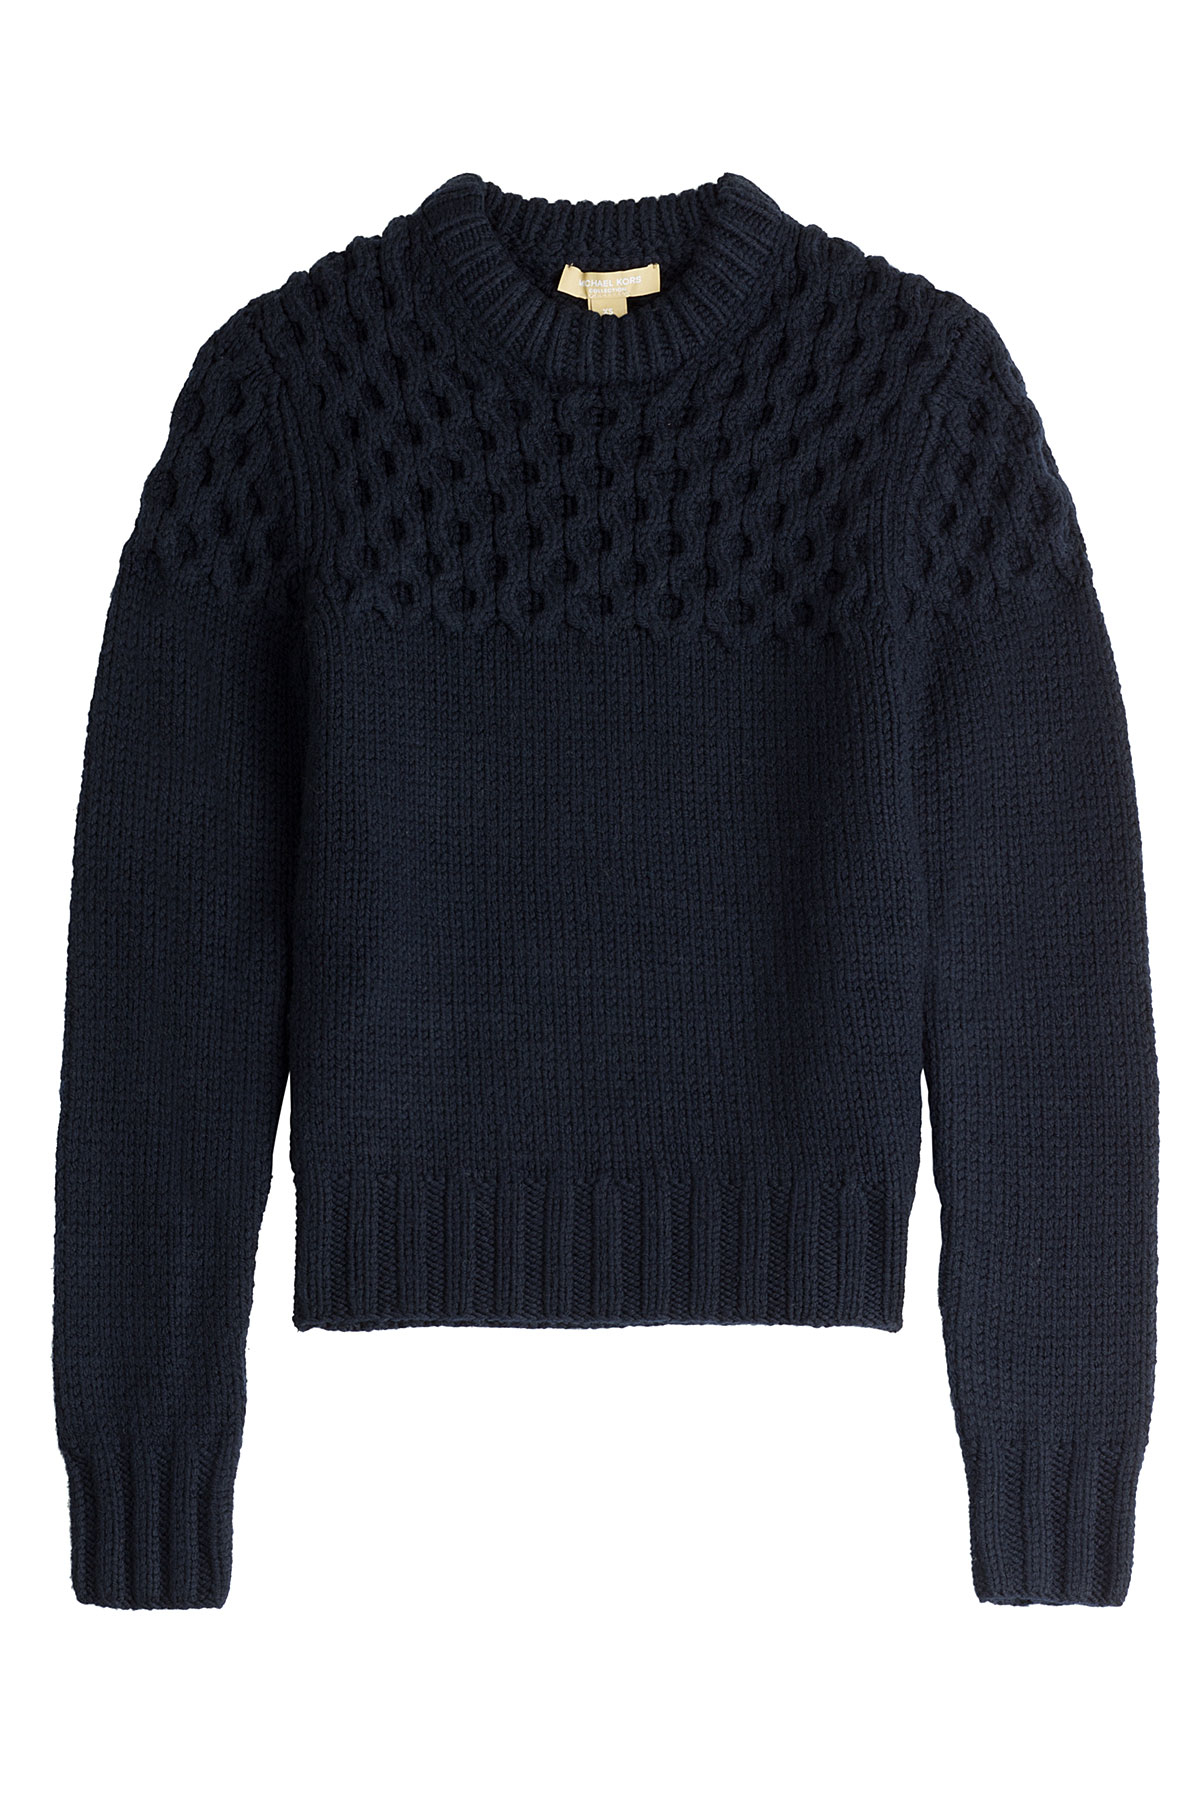 michael kors merino wool pullover with textured yoke in blue lyst. Black Bedroom Furniture Sets. Home Design Ideas